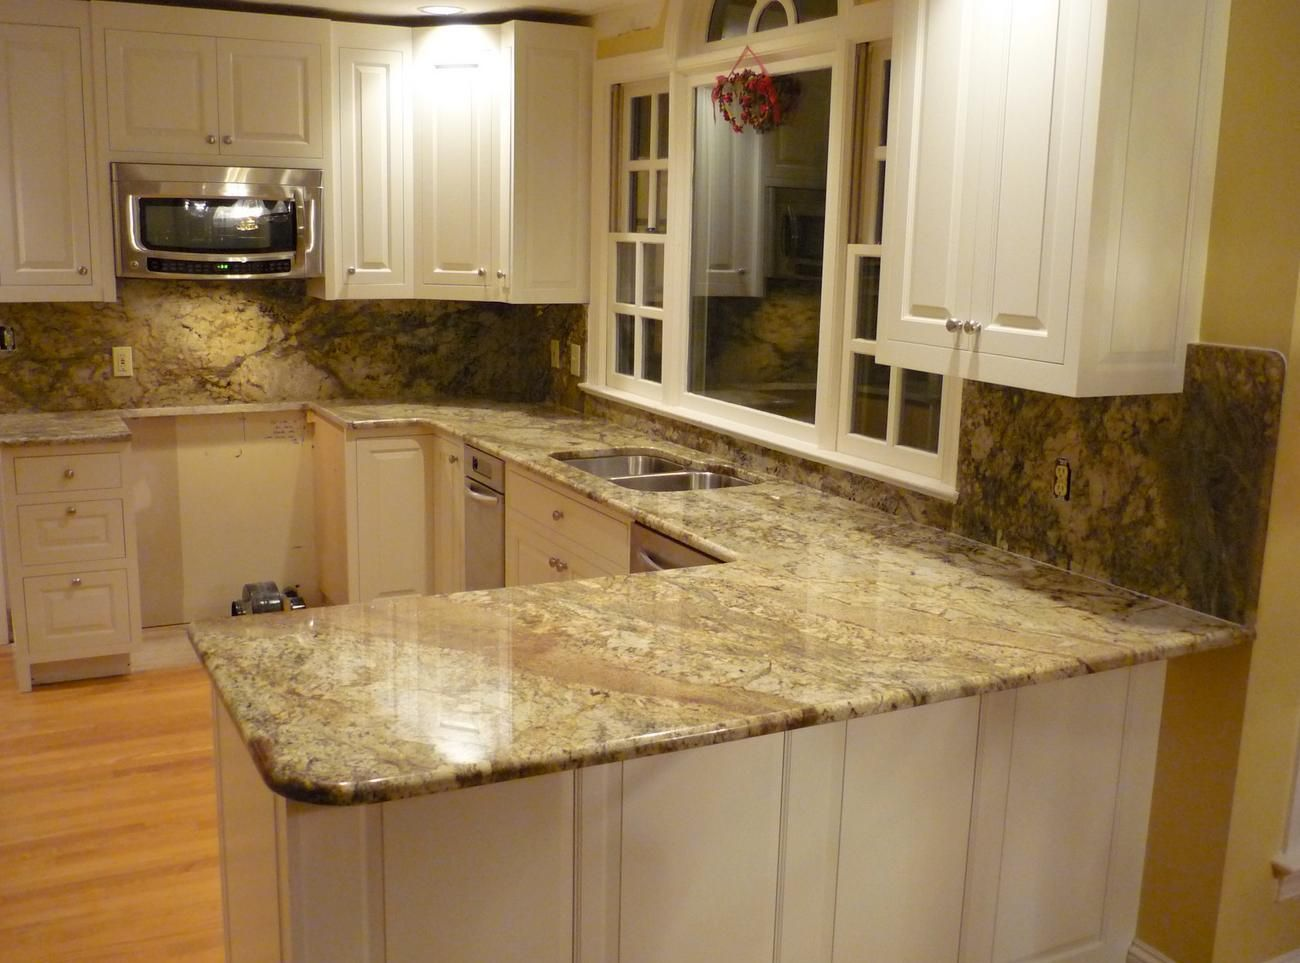 Merveilleux Laminate Countertops That Look Like Granite | Cooking, Setting Up The  Table, Washing Dishes